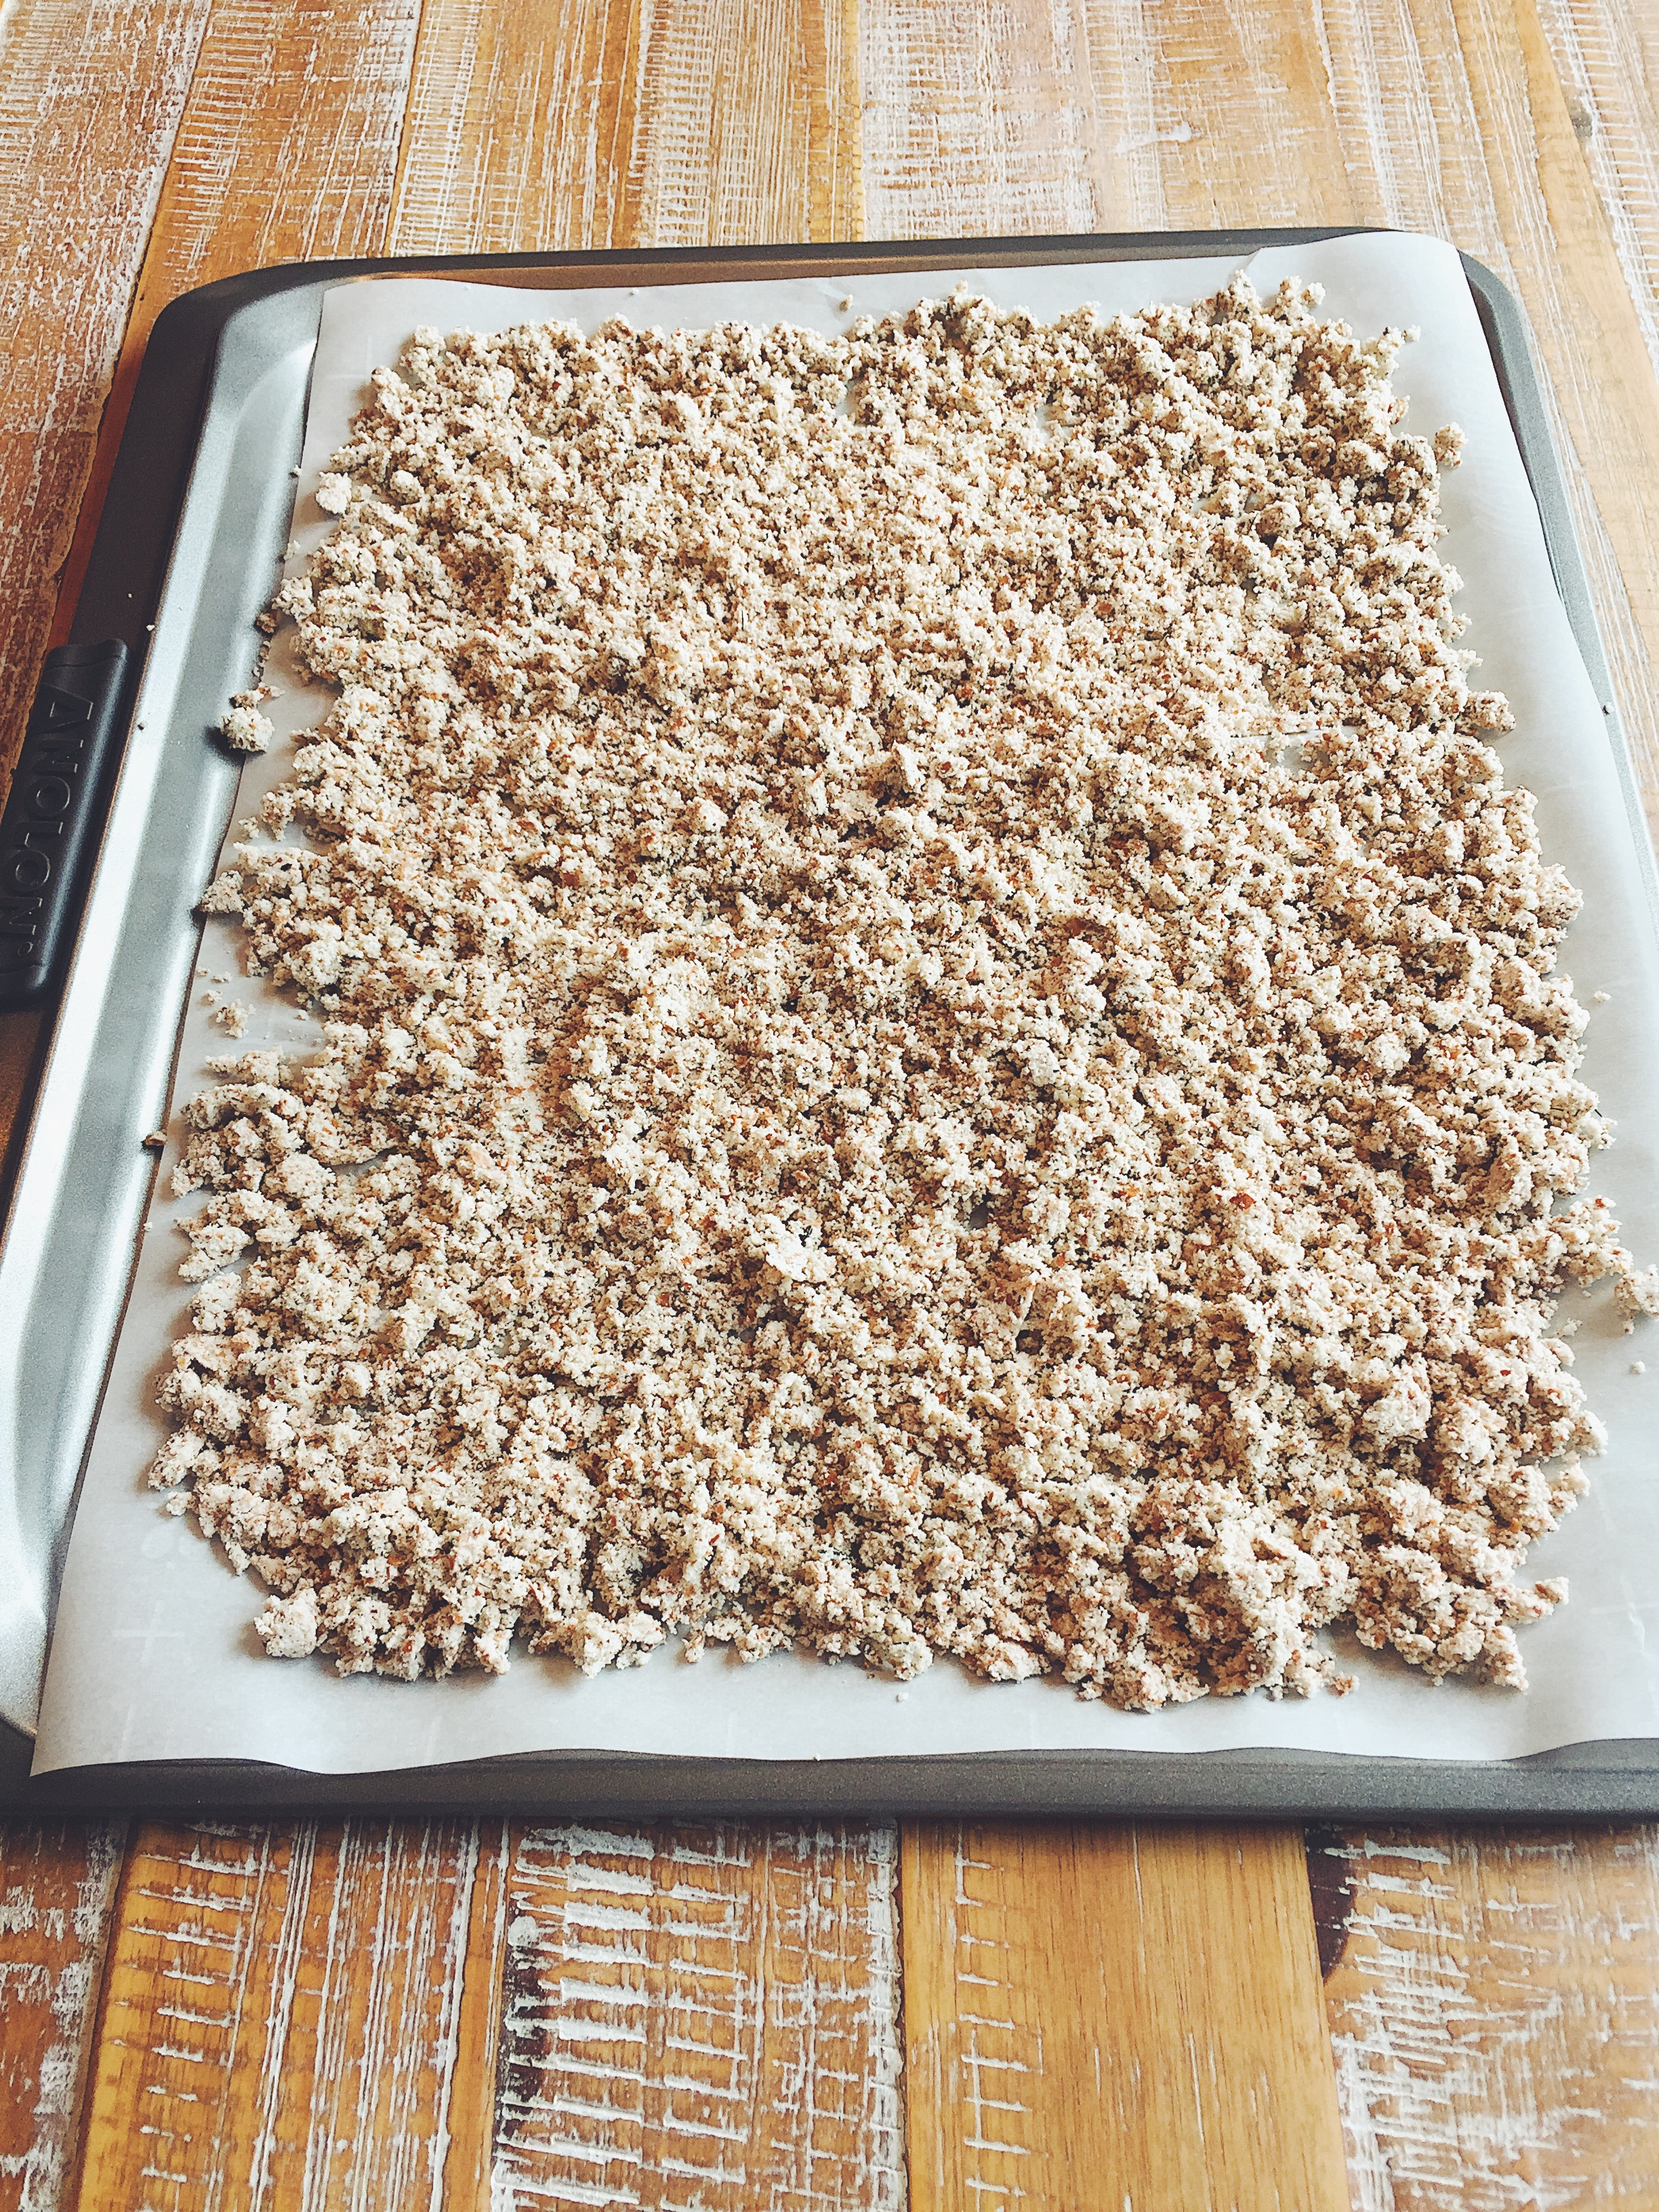 Spread the almond meal onto the parchment paper